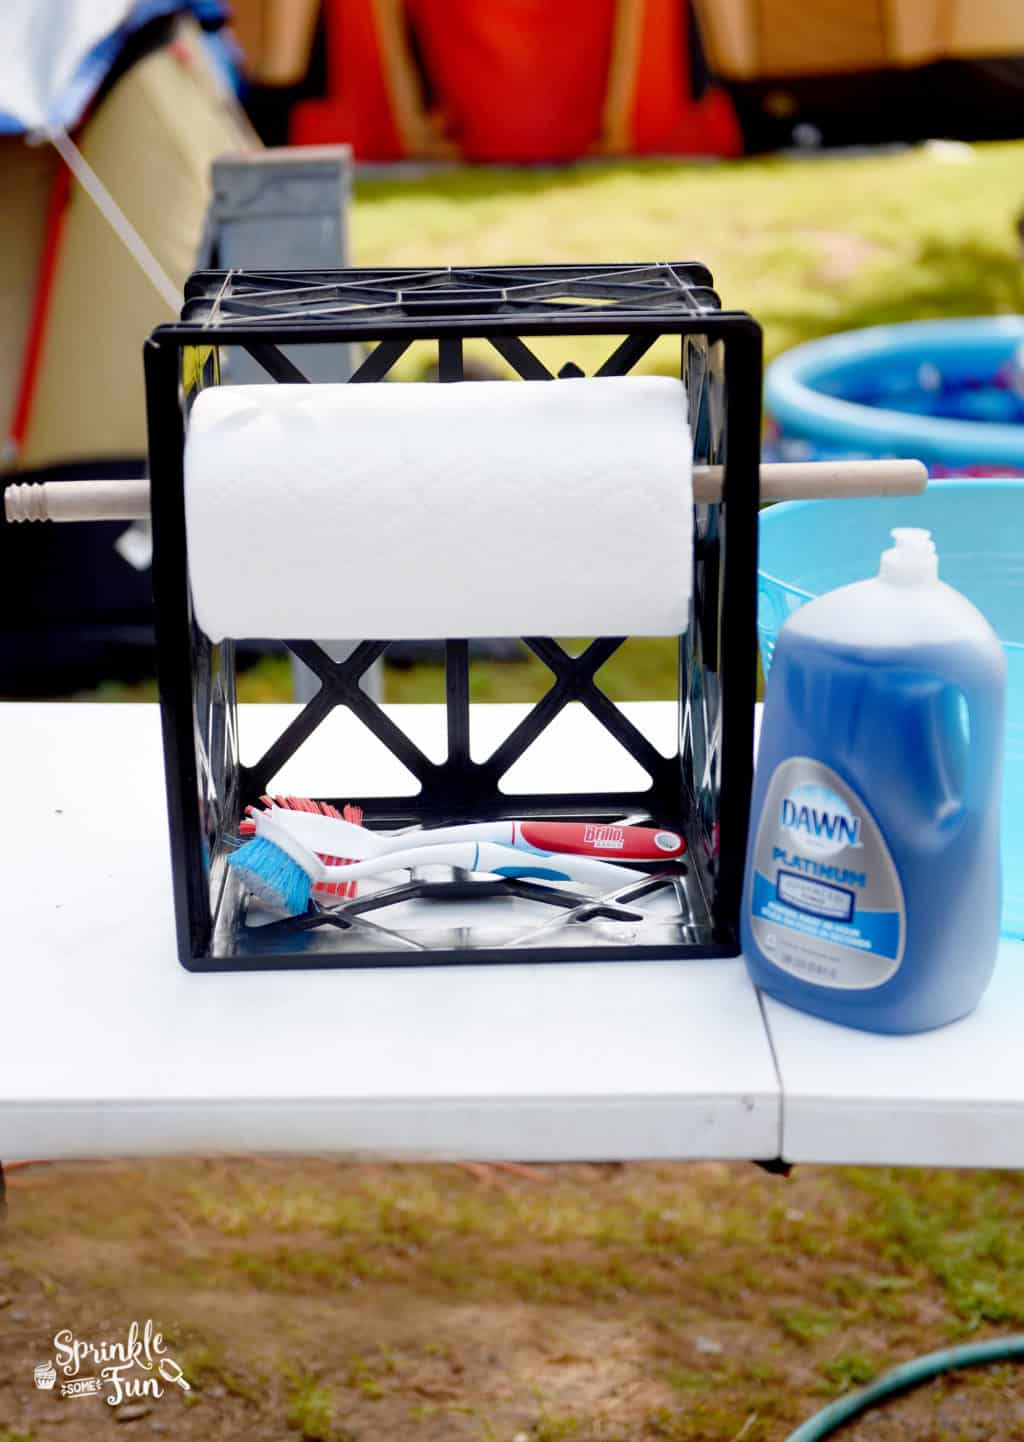 Dishwashing Station for Camping ⋆ Sprinkle Some Fun